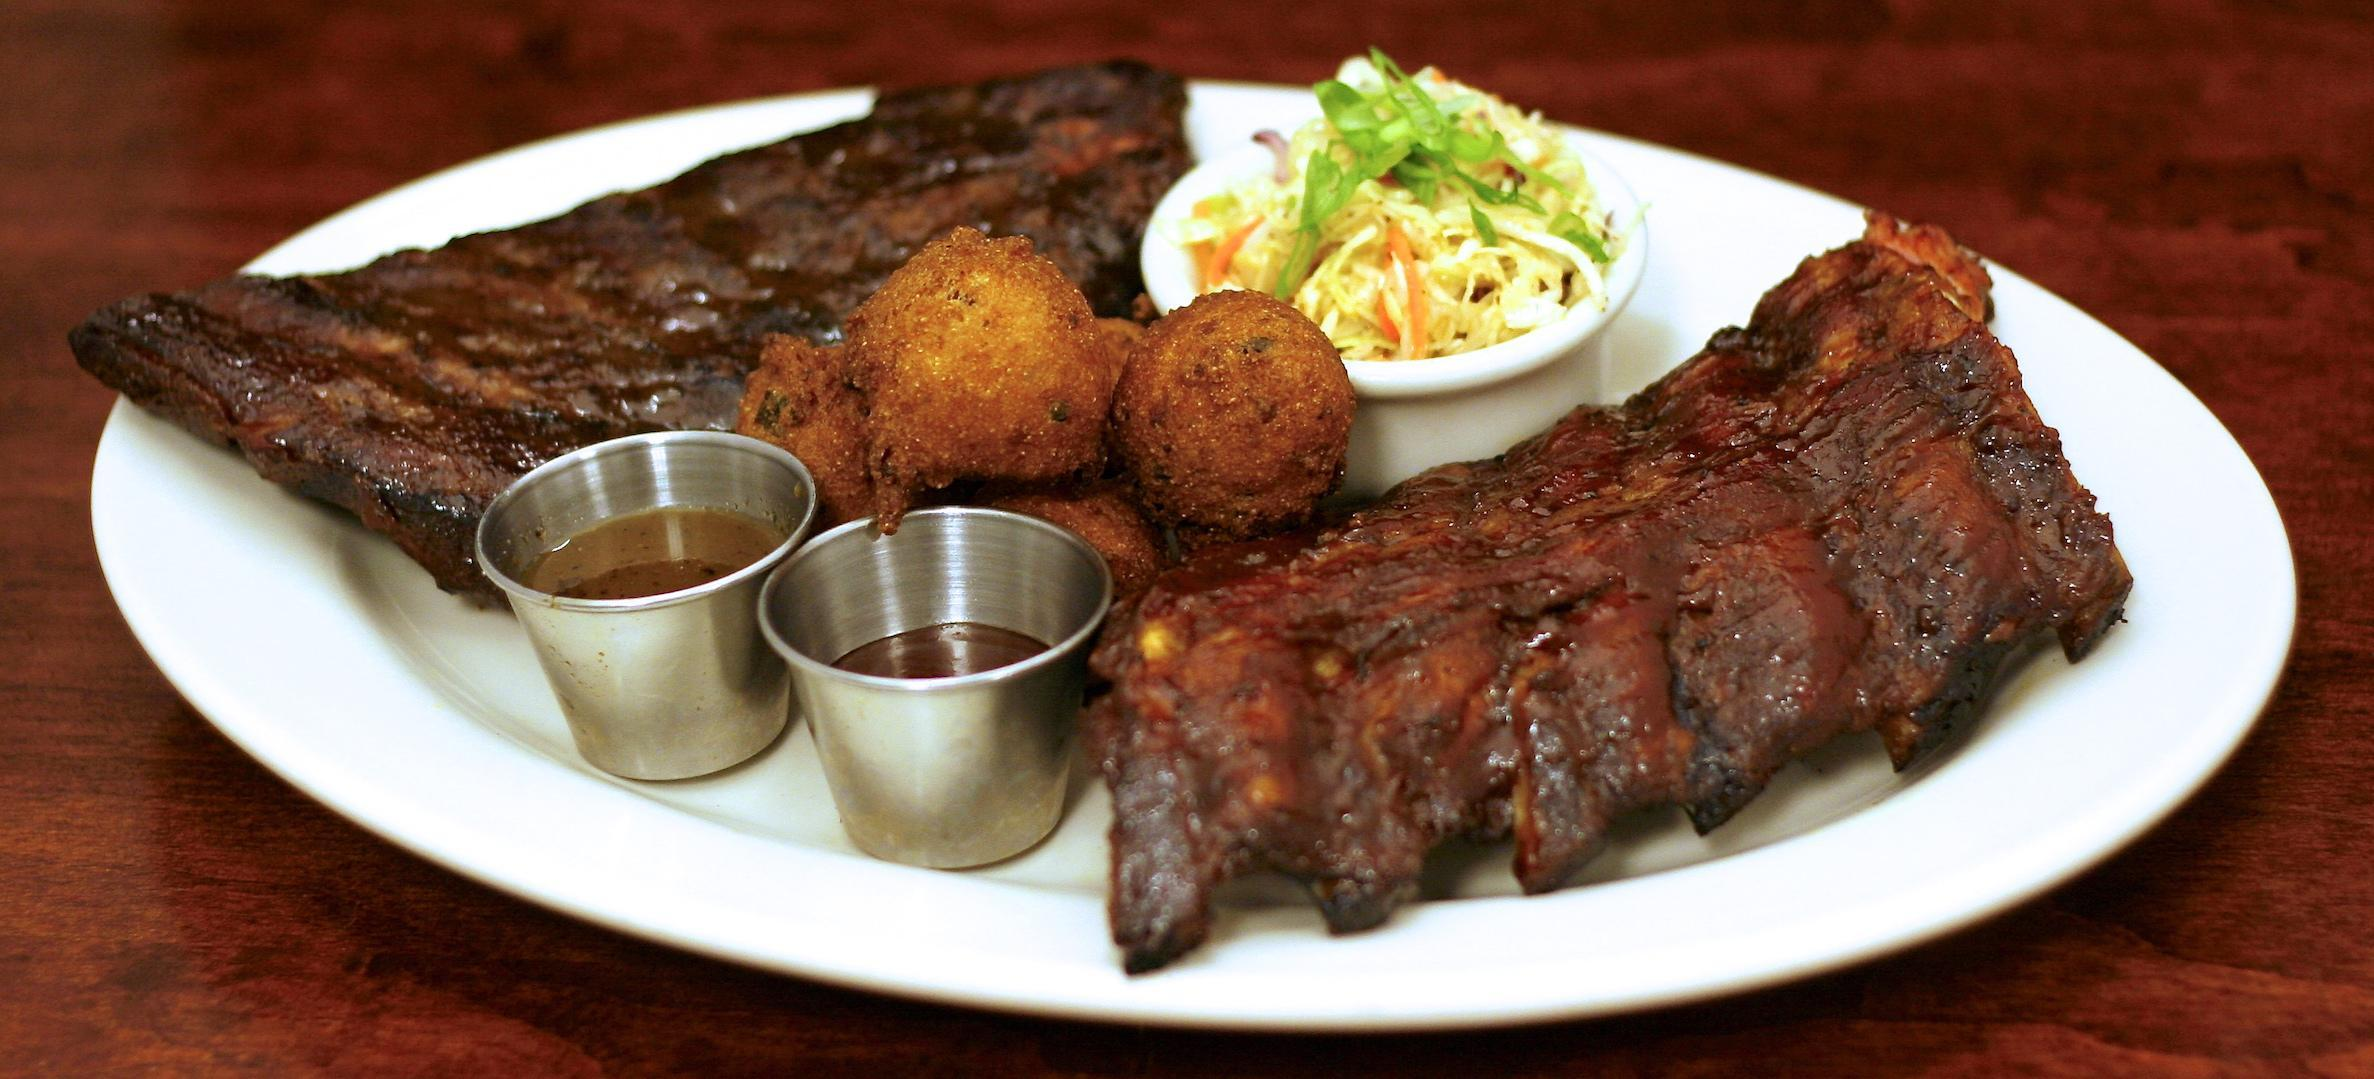 surprise dad with tableside steaks this father s day at weber grill restaurants chicago food. Black Bedroom Furniture Sets. Home Design Ideas